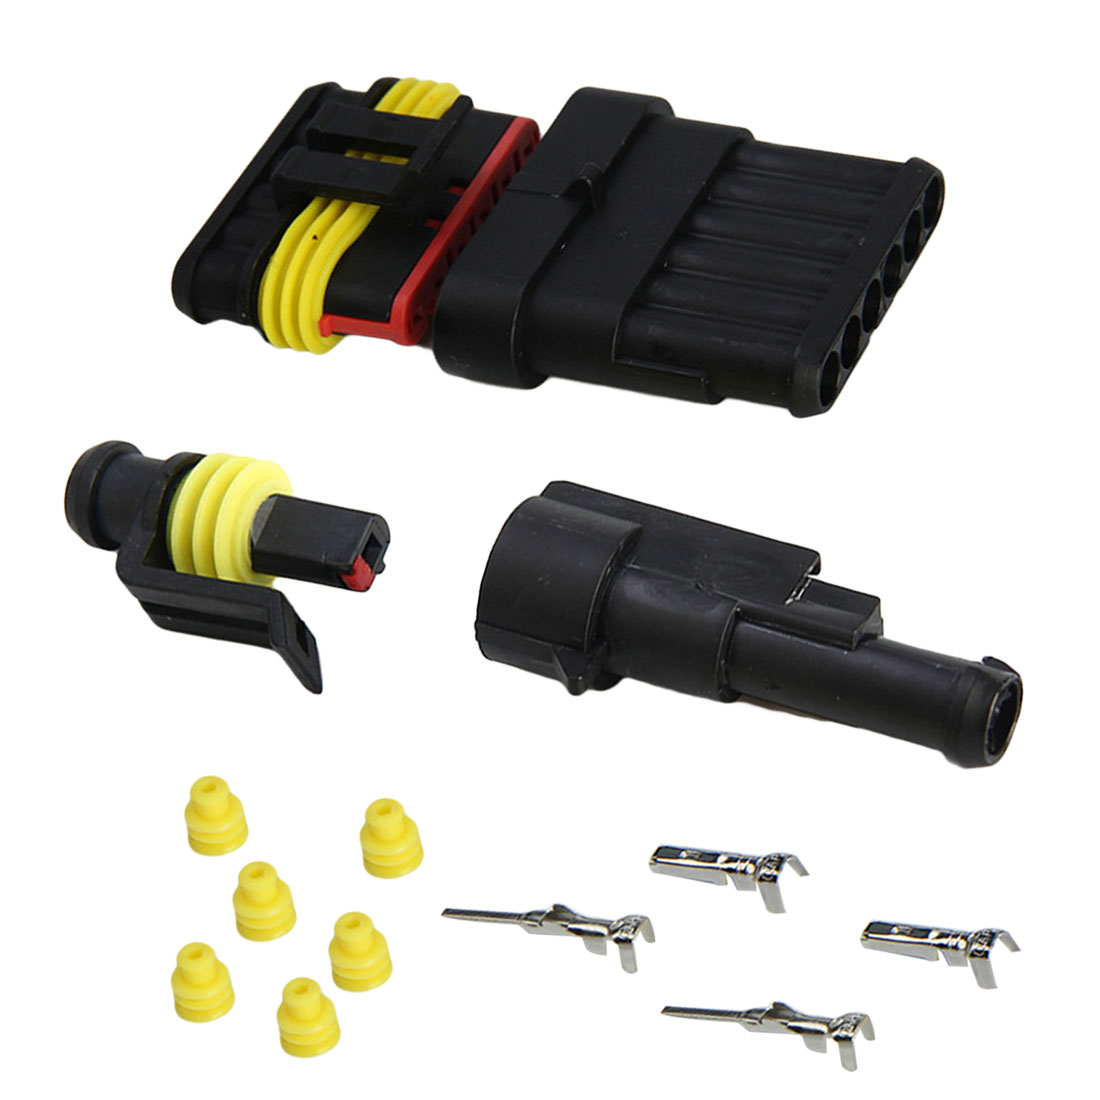 1 Set 1/2/3/4/5/6 Pin To Choose Seal Electrical Waterproof  Automotive Wire Connector Plug Terminals For Car